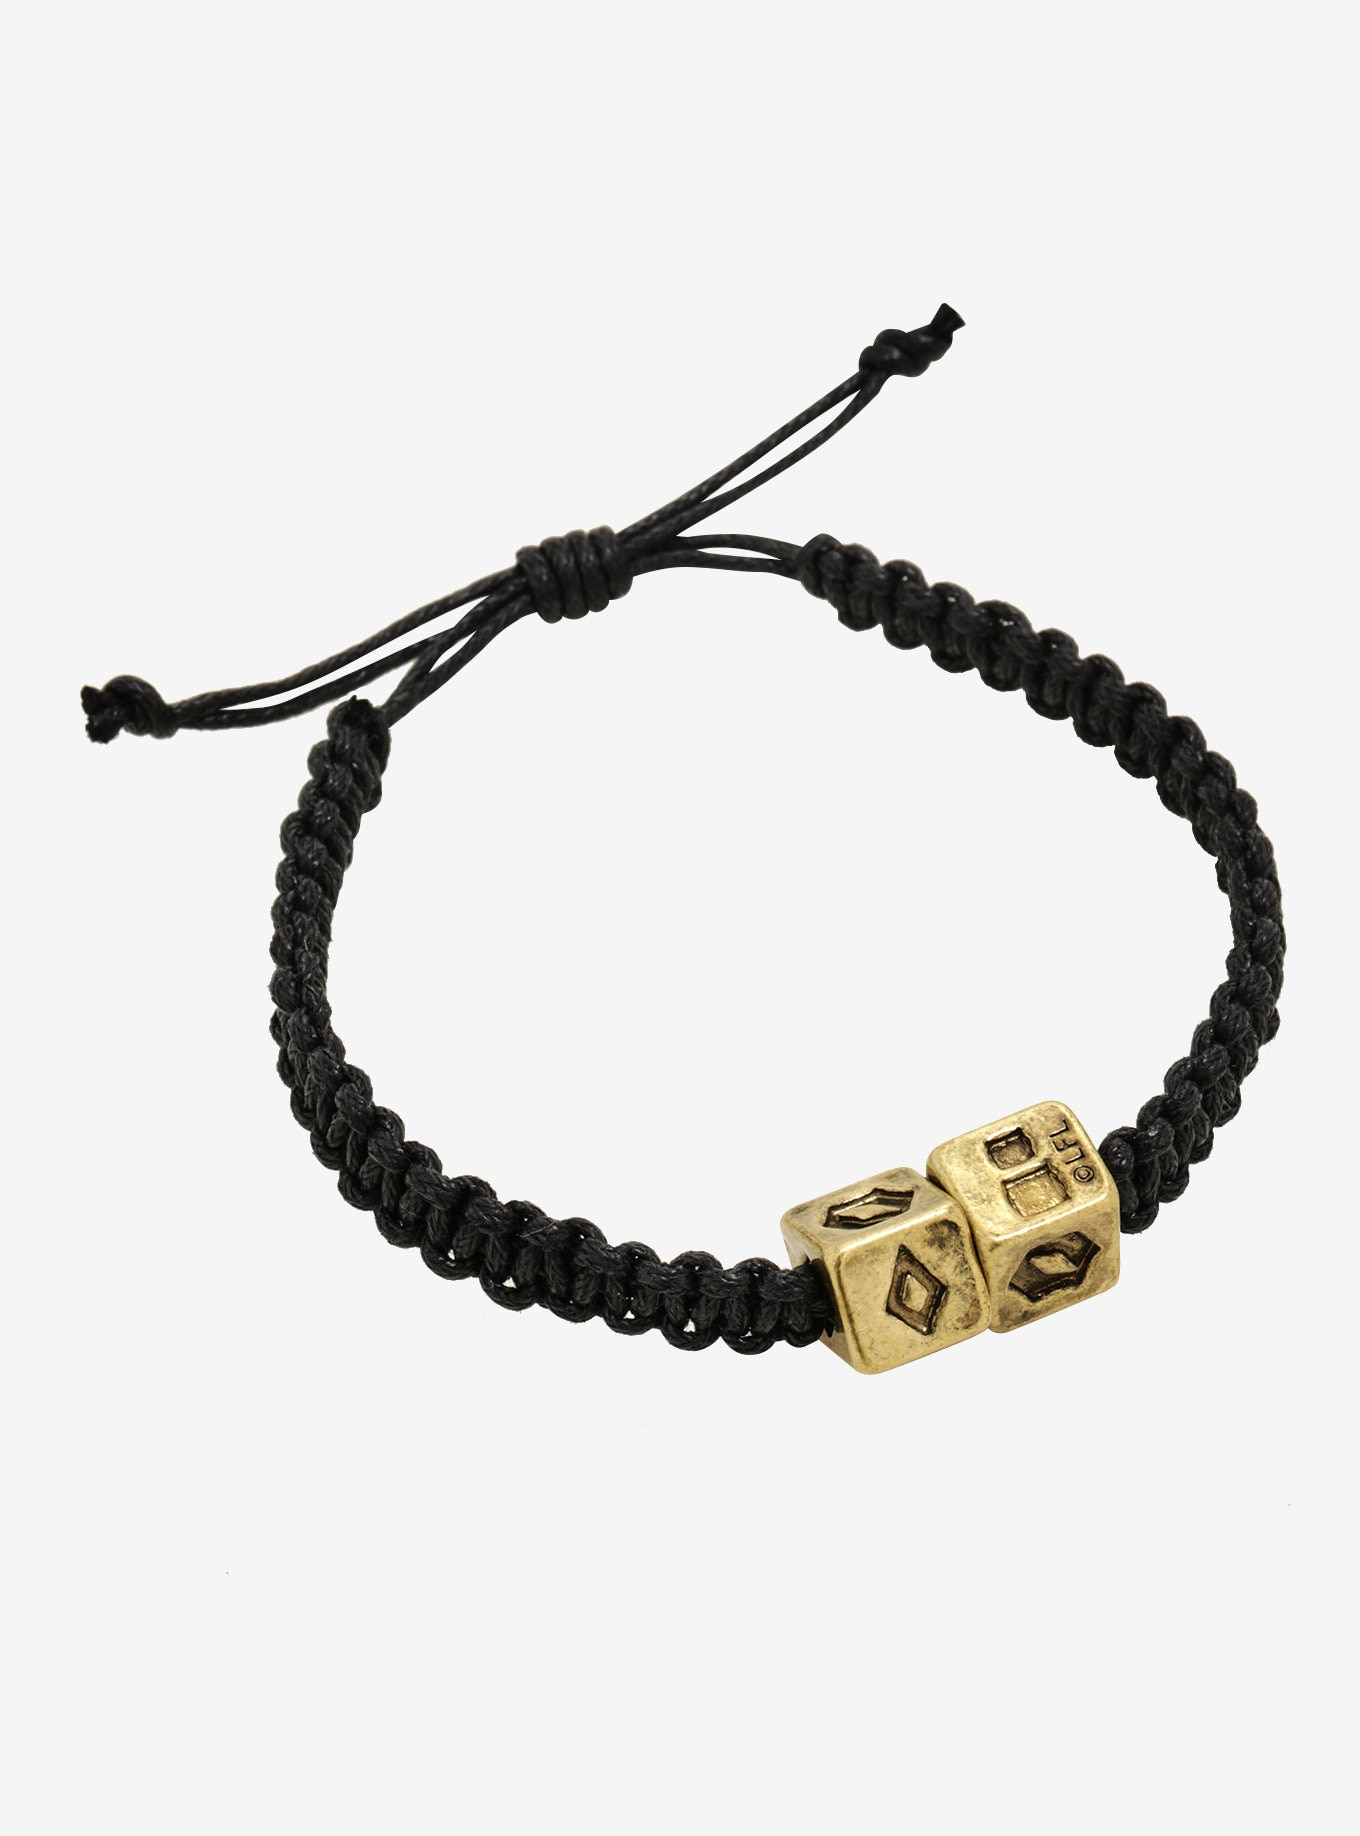 Solo A Star Wars Story Han Solo Dice Cord Bracelet at Box Lunch